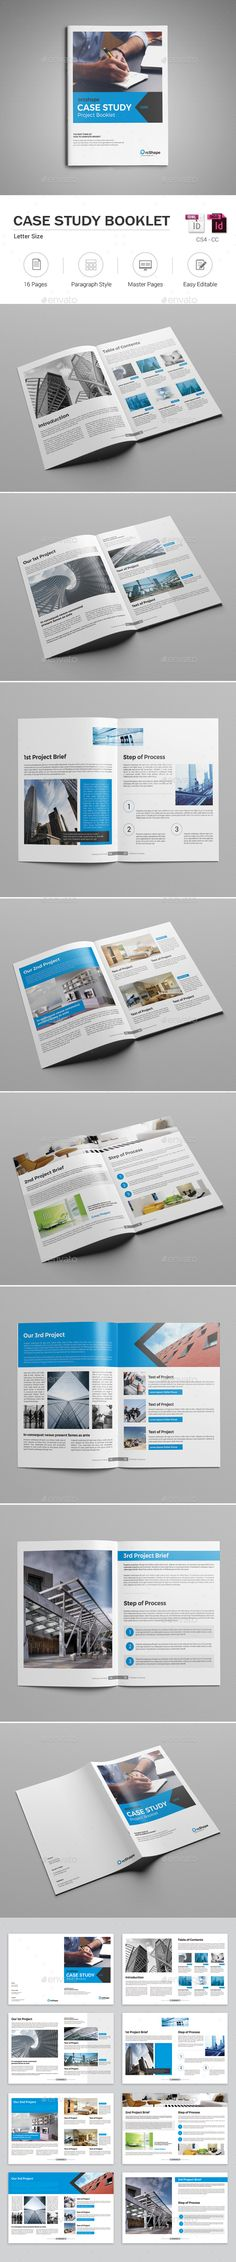 Case Study Booklet Design Template - Informational Brochures Template InDesign Template InDesign INDD. Download here: https://graphicriver.net/item/case-study-booklet/17712863?ref=yinkira